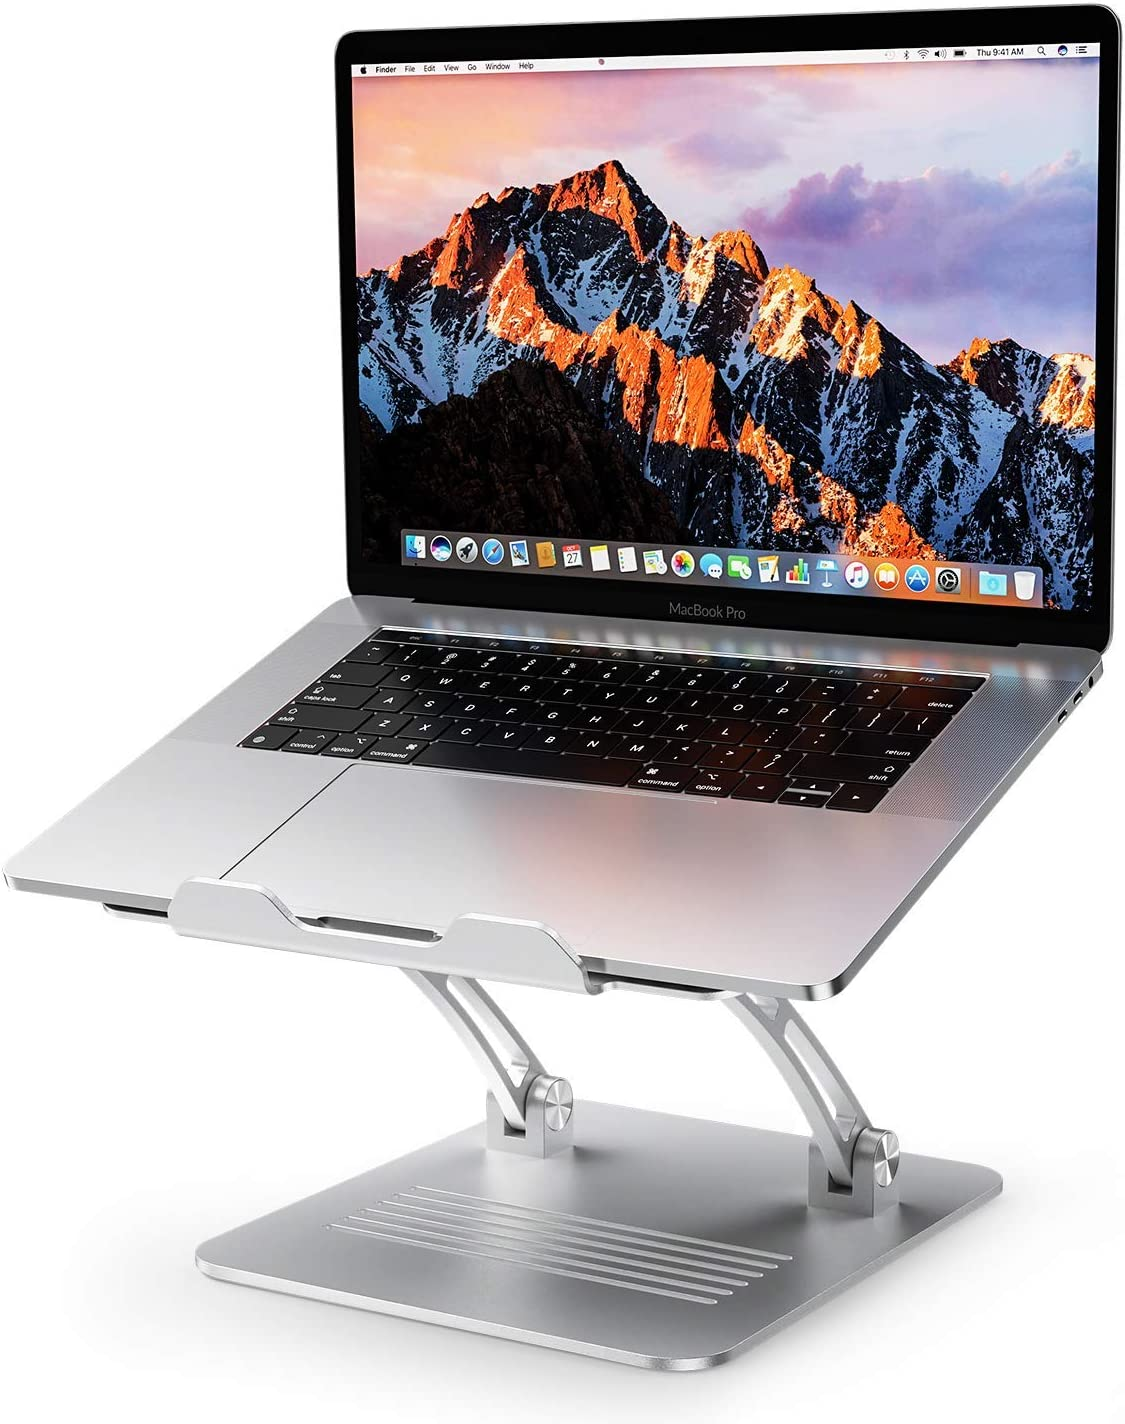 "Laptop Stand Adjustable, OMOTON Ergonomic Aluminum Computer Holder with Cooling Function and Laptop Riser Clamp for USB-C Hub, Compatible with MacBook Pro/Air, All Laptops of 11-17.3"", Silver"